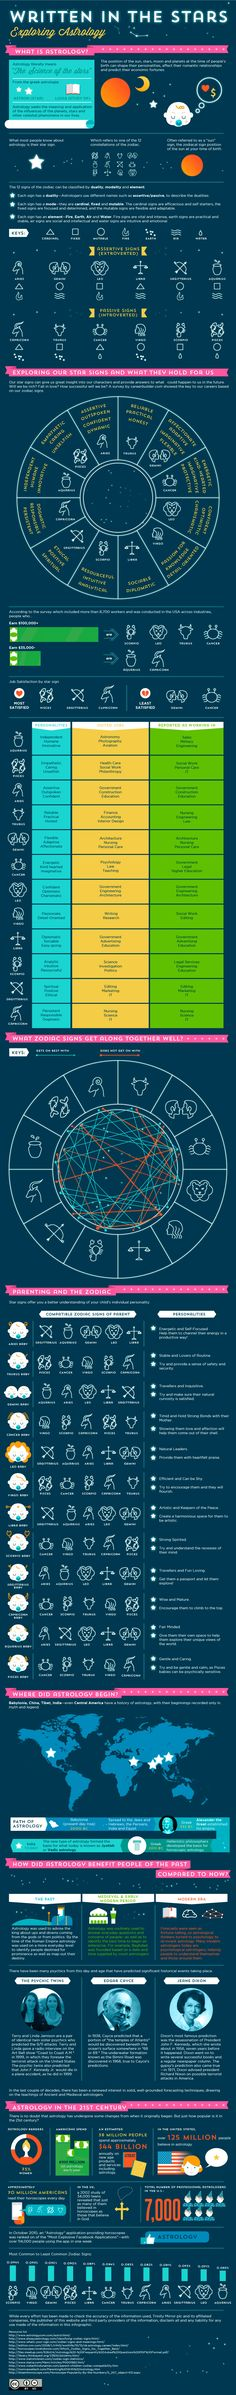 Written In The Stars: Exploring Astrology @ Pinfographics